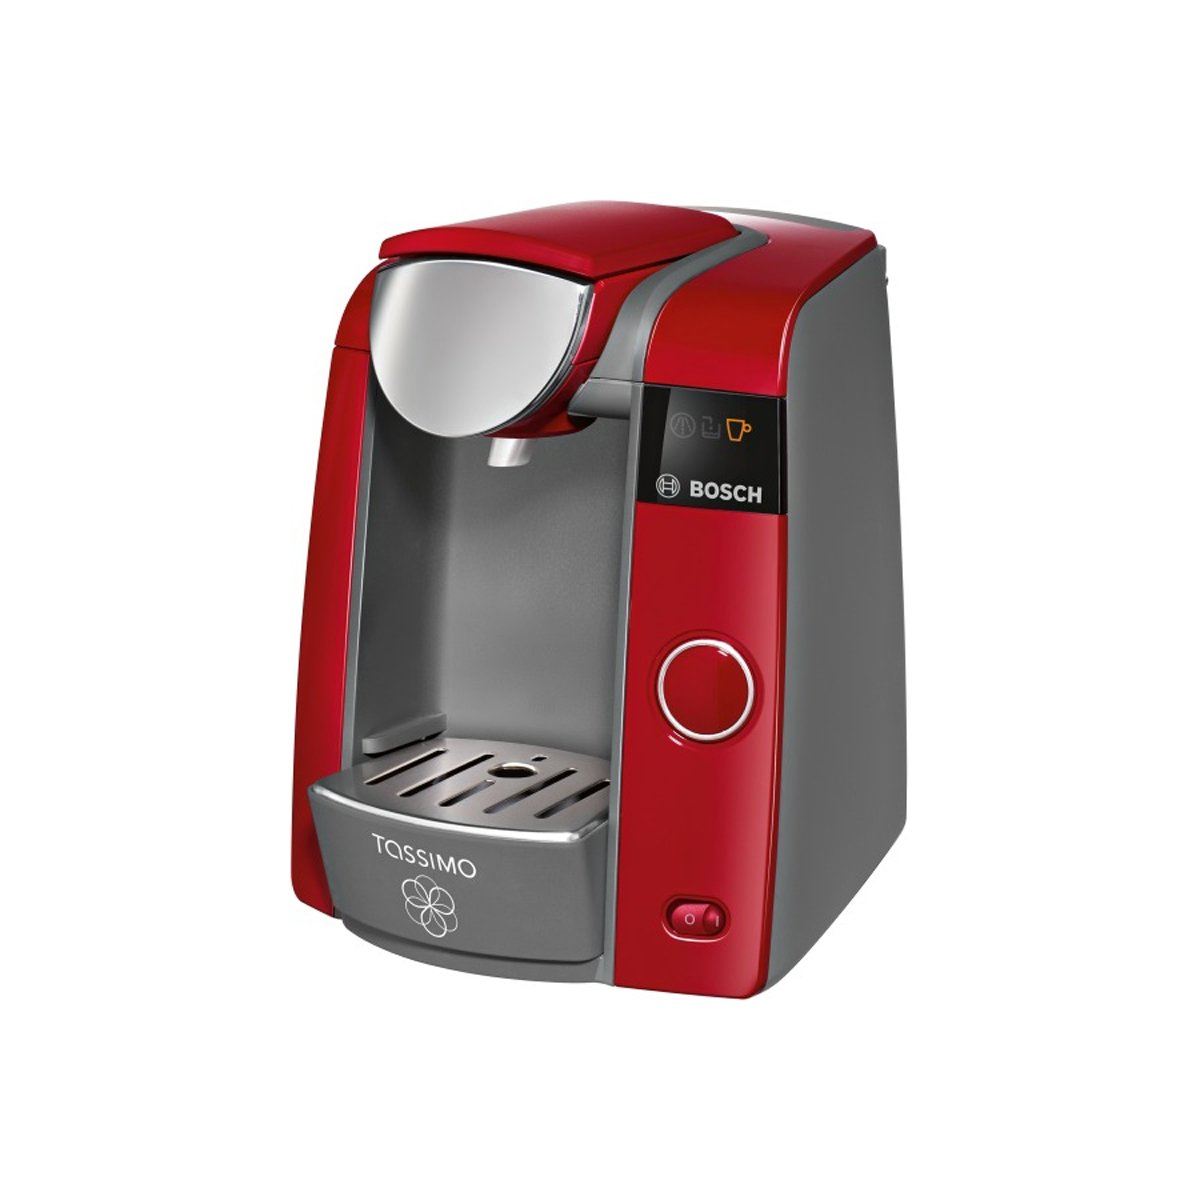 Bosch Coffee Maker Hot Water : Bosch Tassimo Red Joy Multi Hot Beverage Machine Coffee Espresso Maker TAS4303GB eBay